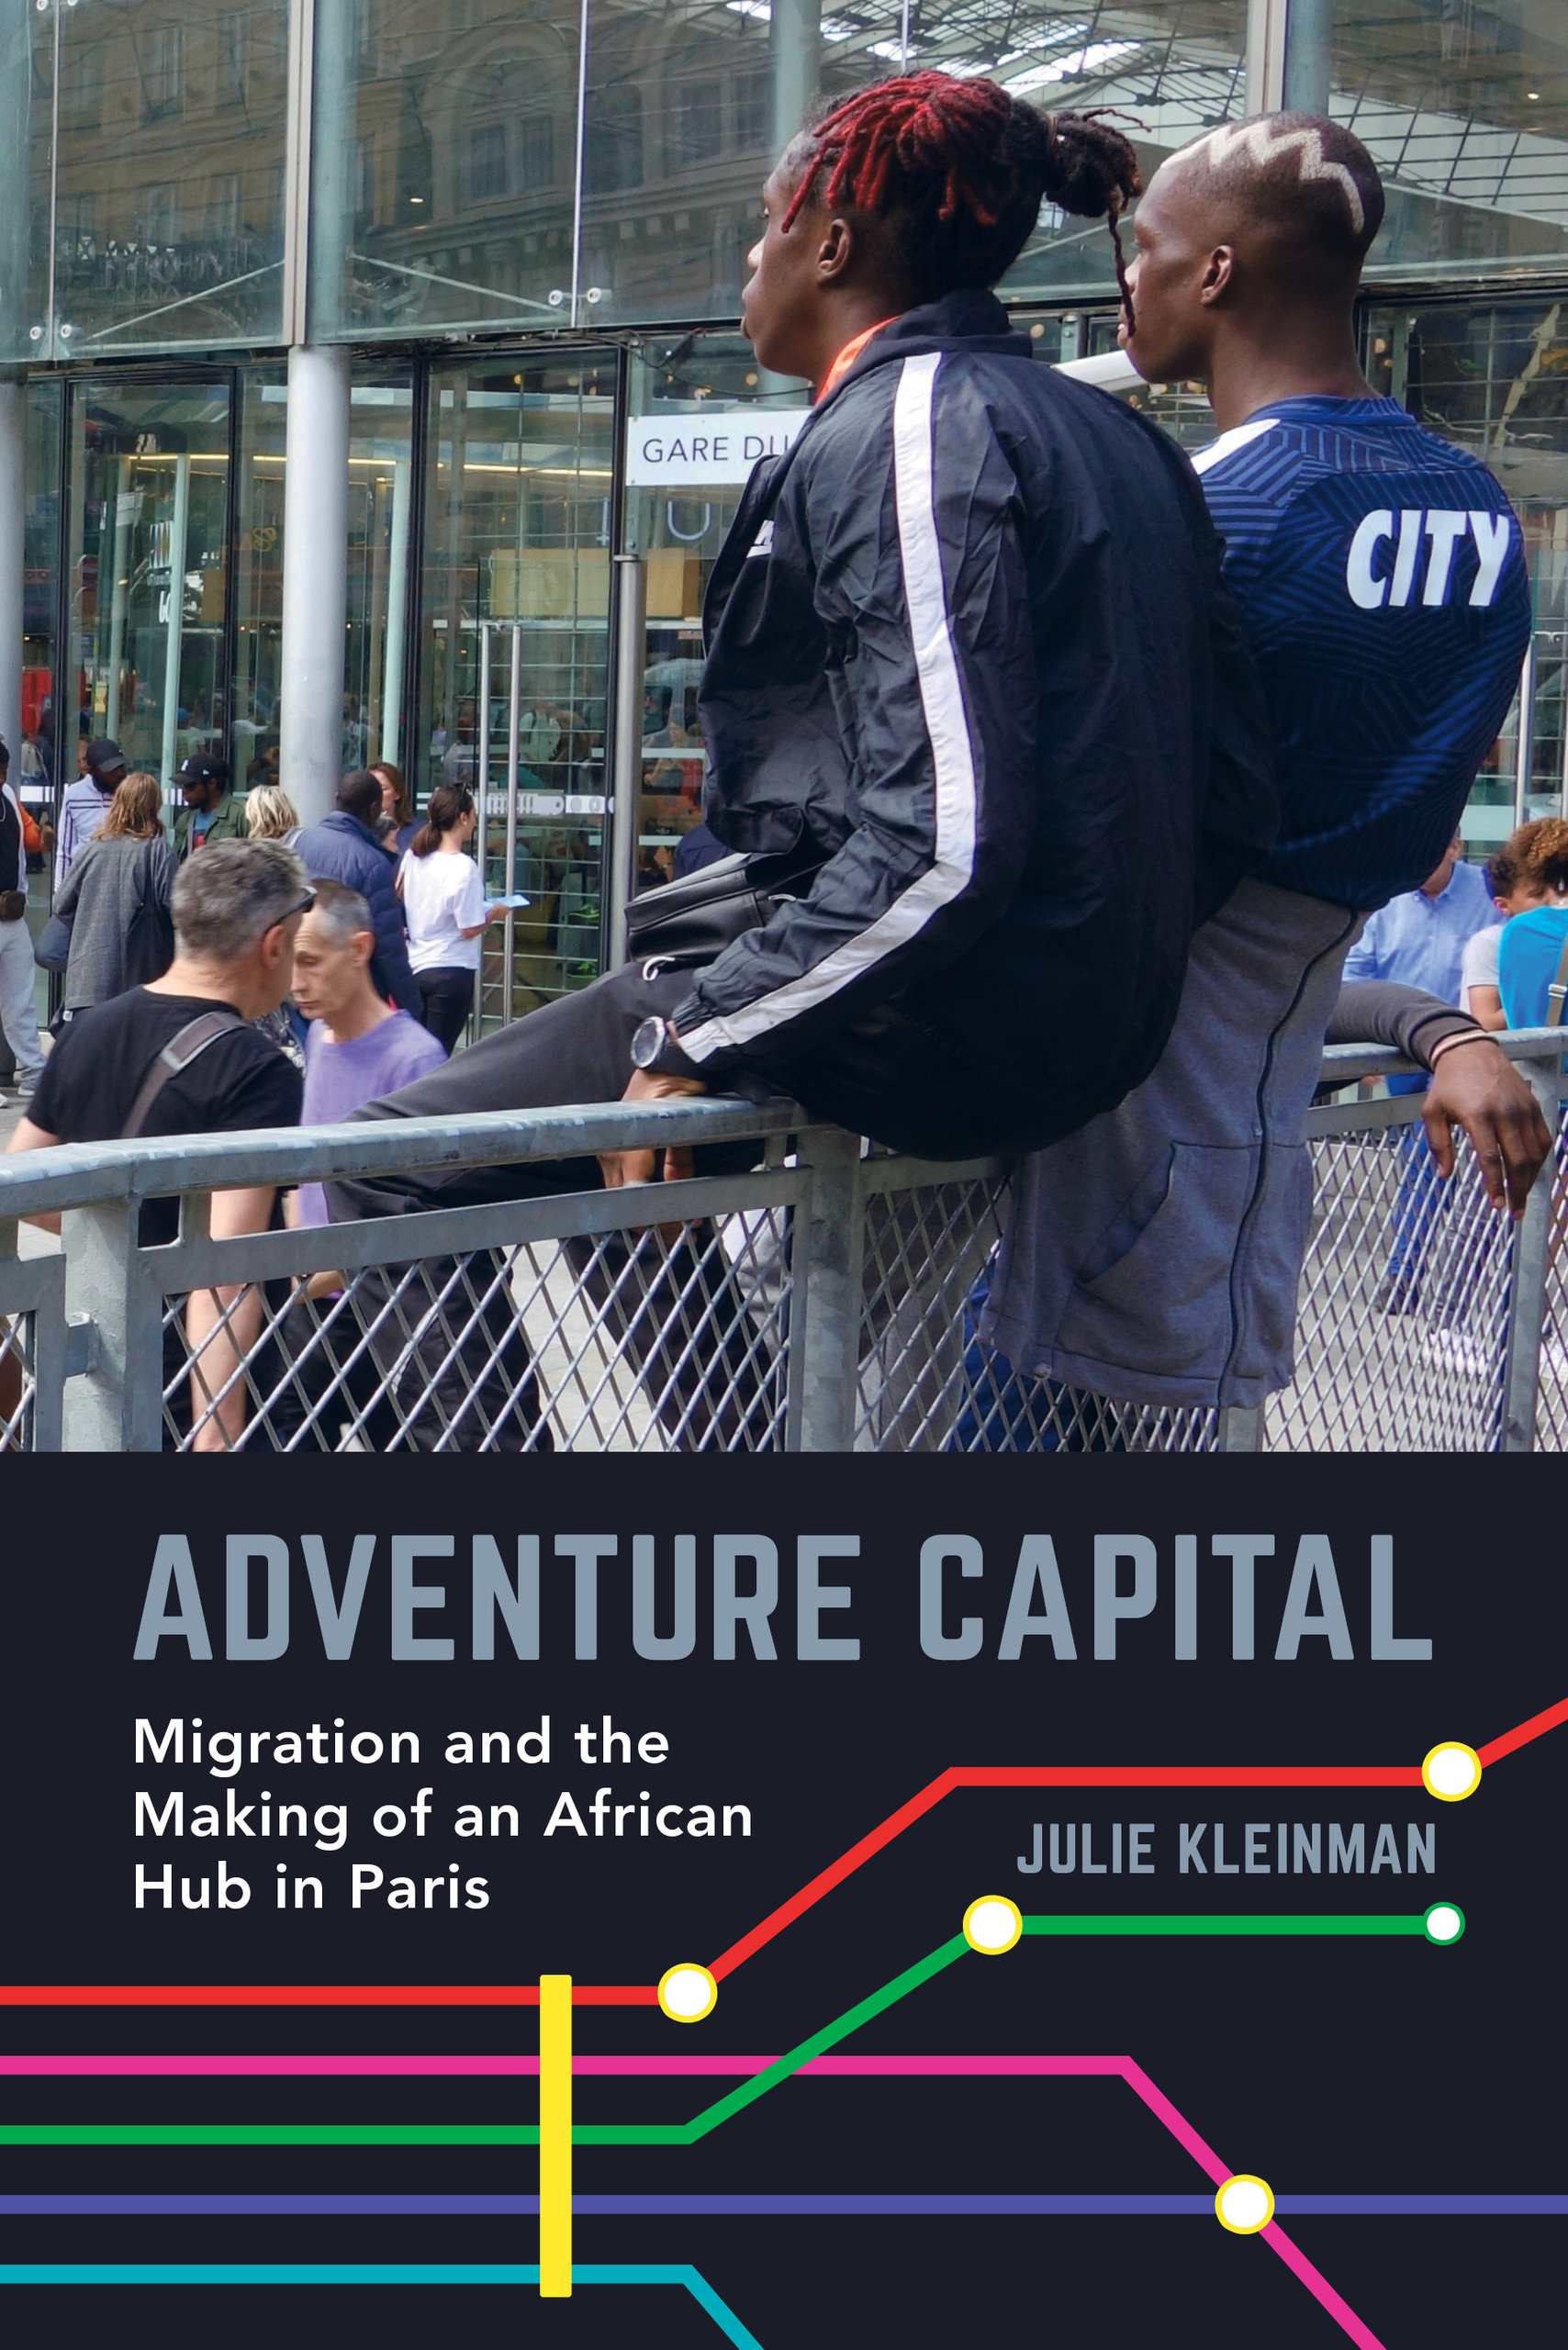 Adventure Capital by Julie Kleinman